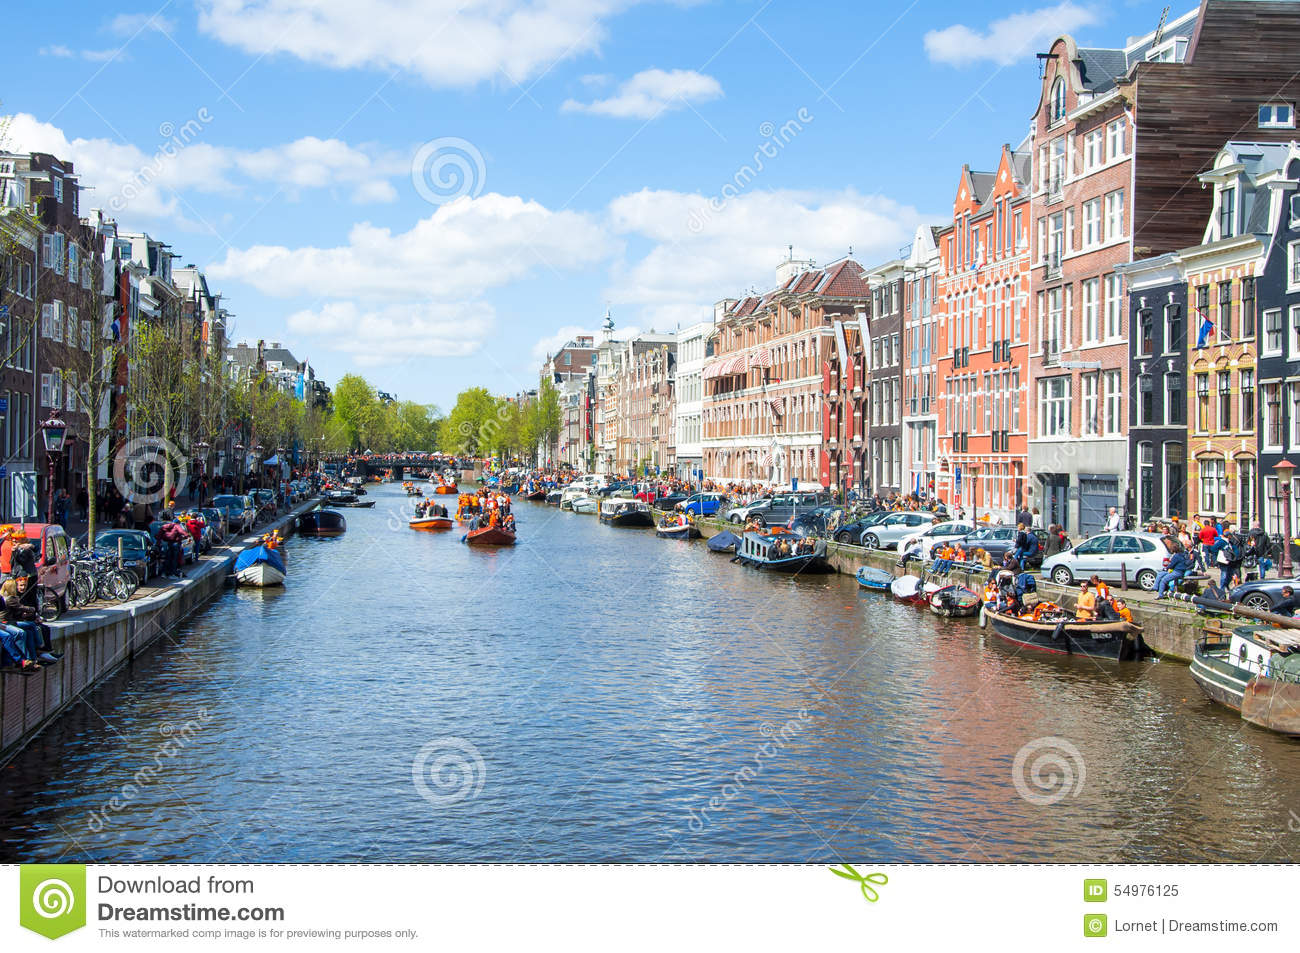 AMSTERDAM-APRIL 27: Amsterdam cityscape on King s Day, on April 27,2015, the Netherlands.